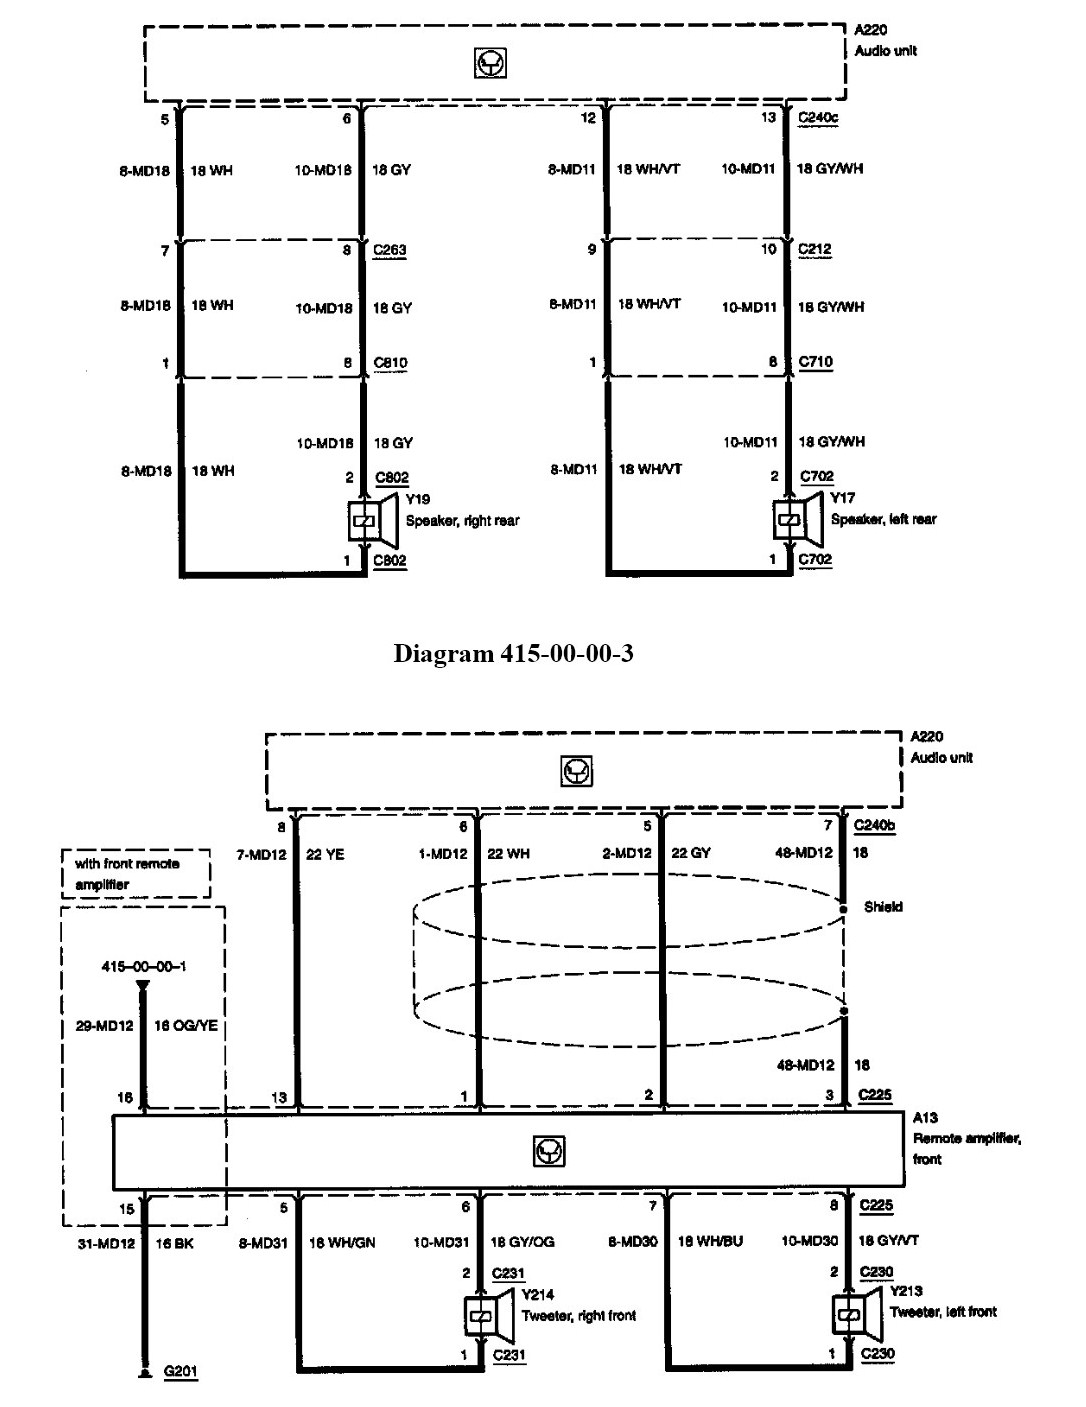 Wiring Diagram For 2000 Lincoln Ls Diagrams Continental Fuse Box Get Free Image